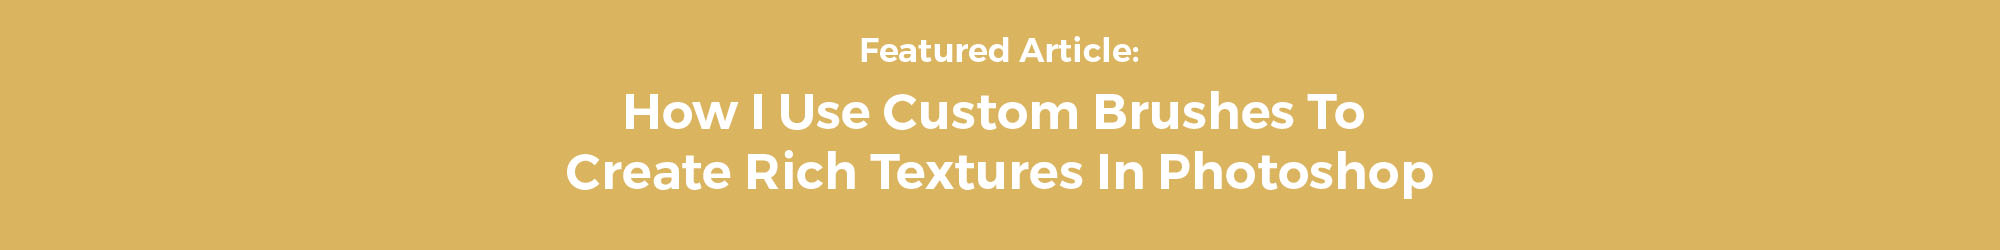 How I Use Custom Brushes To Create Rich Textures In Photoshop